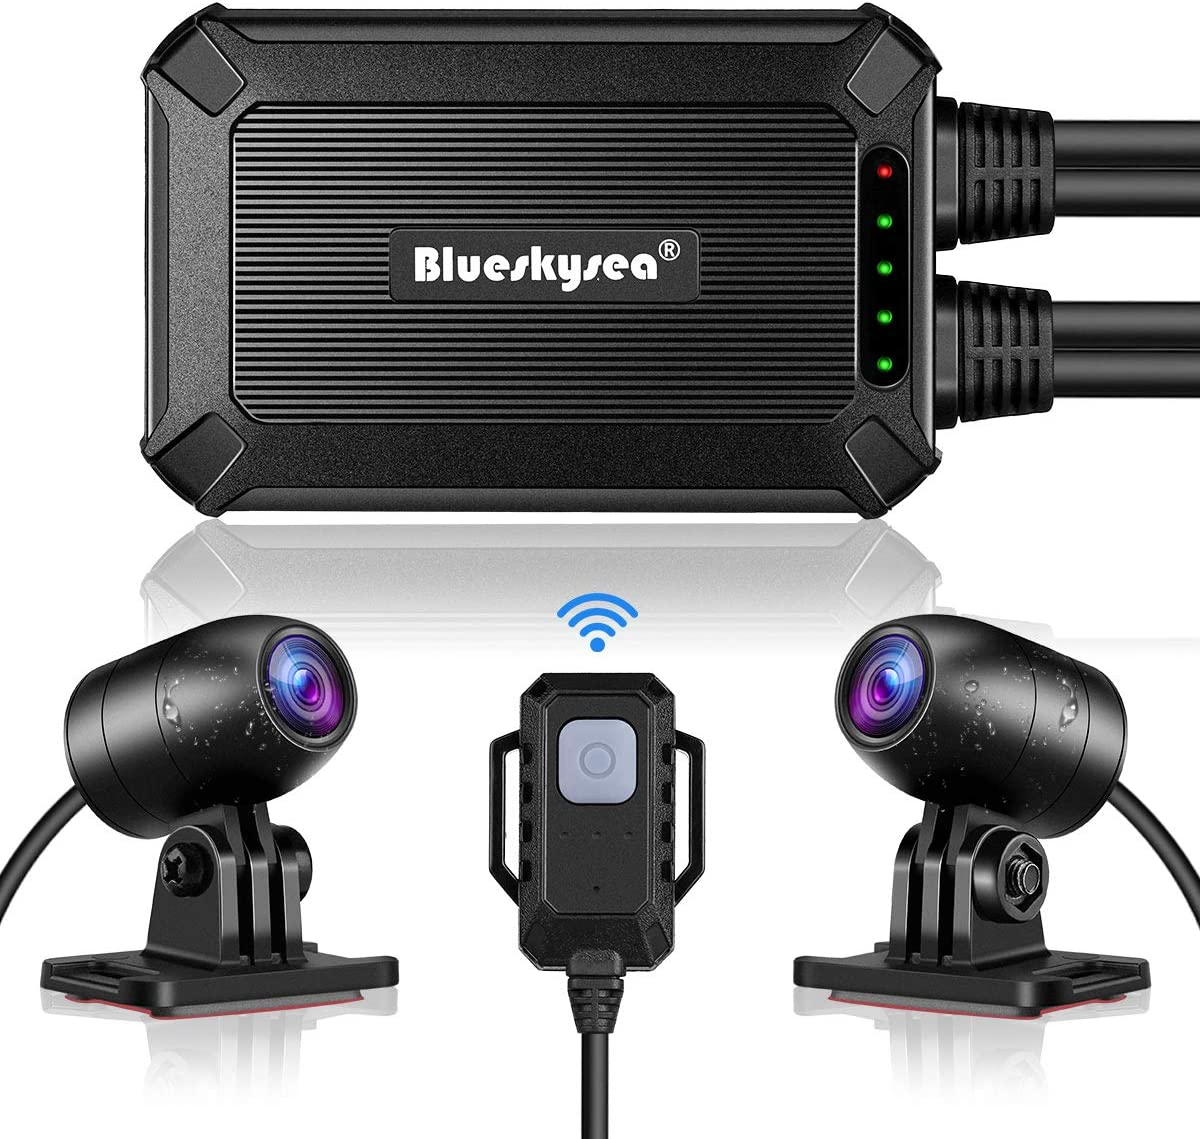 6knpzz9irhqrnm https www amazon com blueskysea motorcycle recorder waterproof recording dp b07zqcnx9r